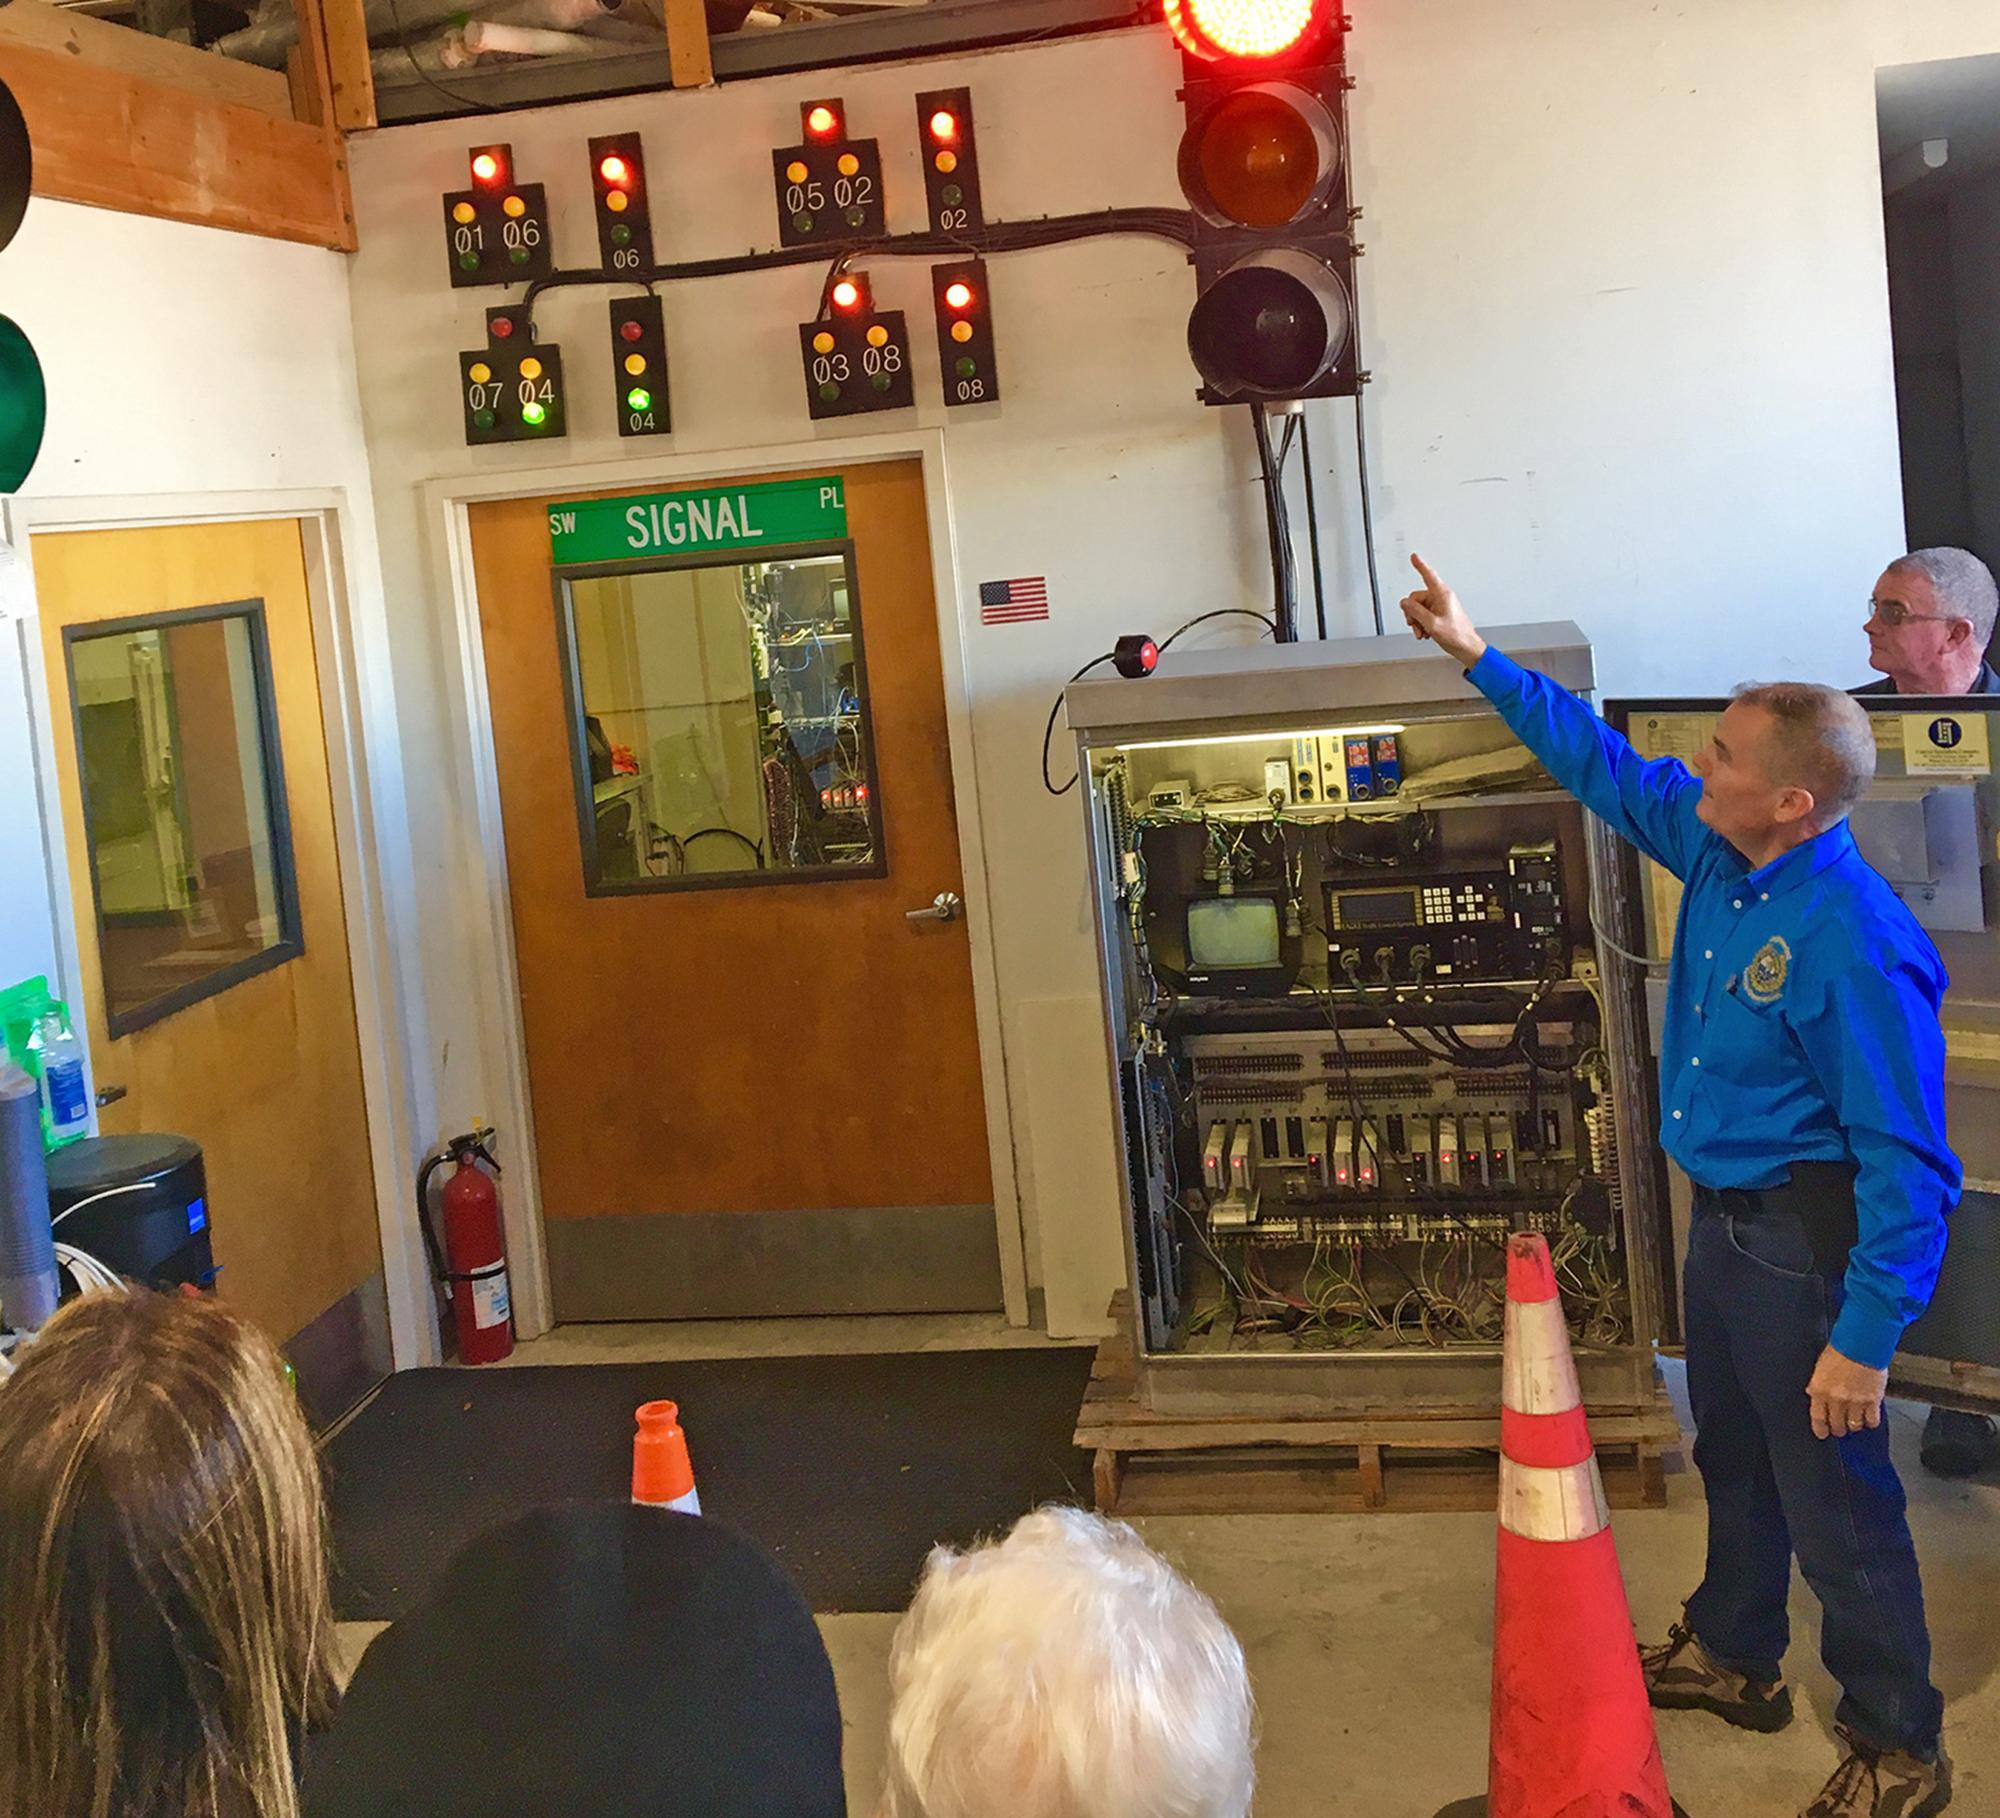 Engineering staff demonstrate traffic signals